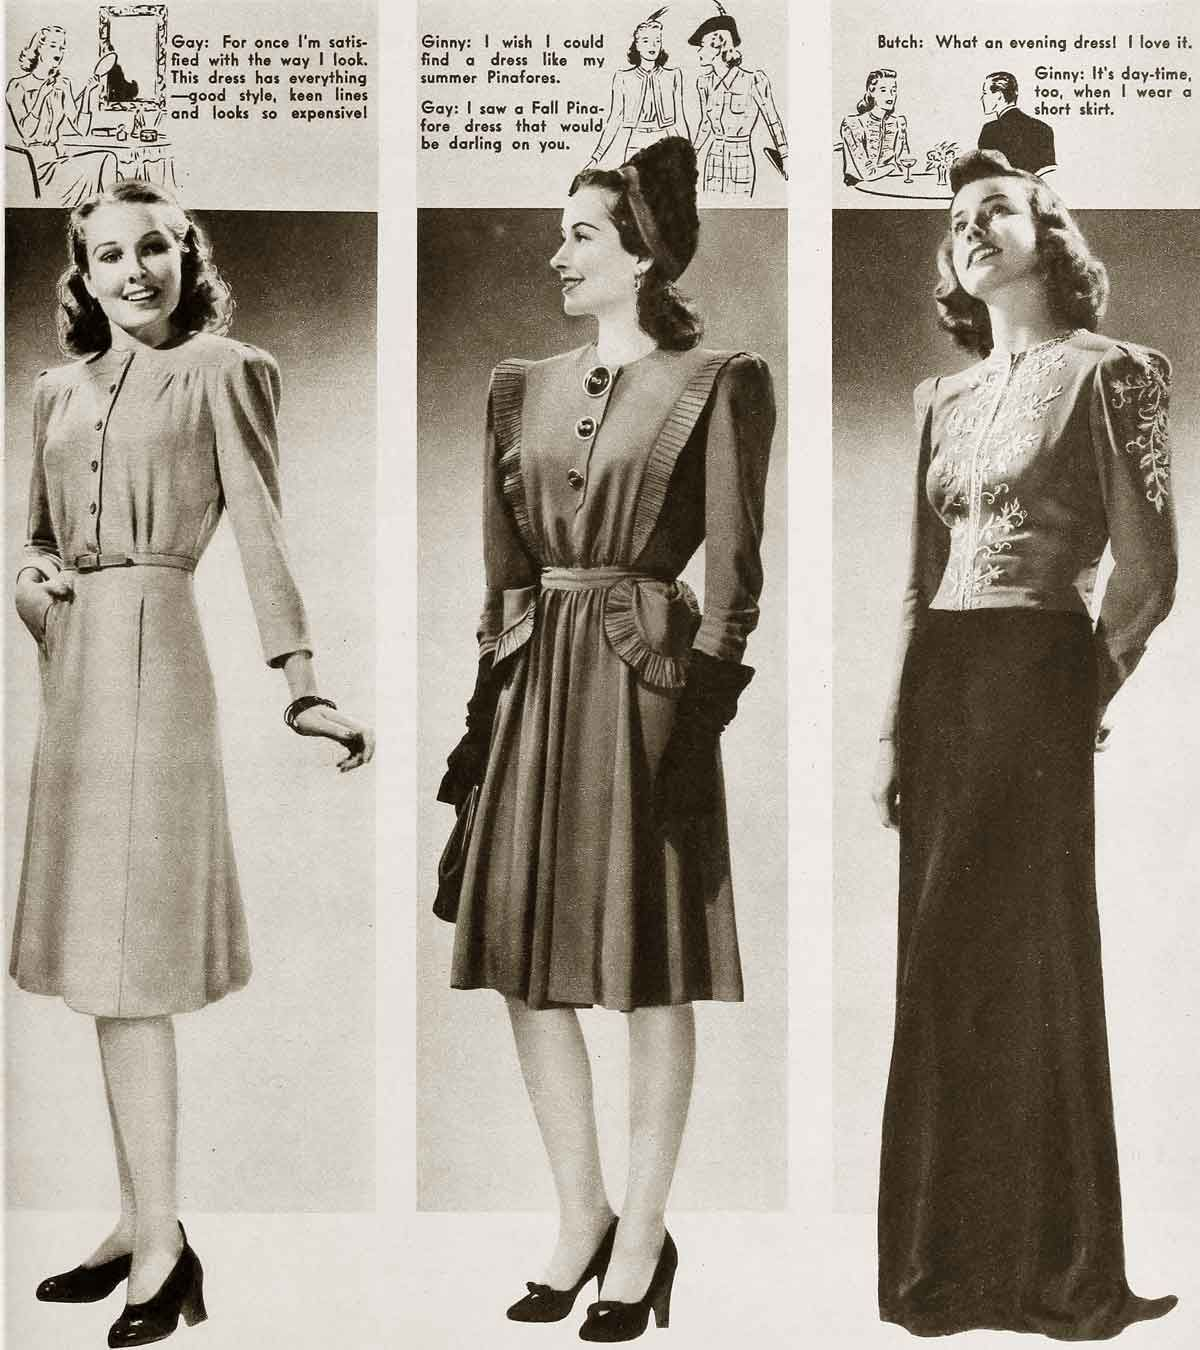 1940s Fashion - Cool Winter Styles | 1940s | Fashion ...